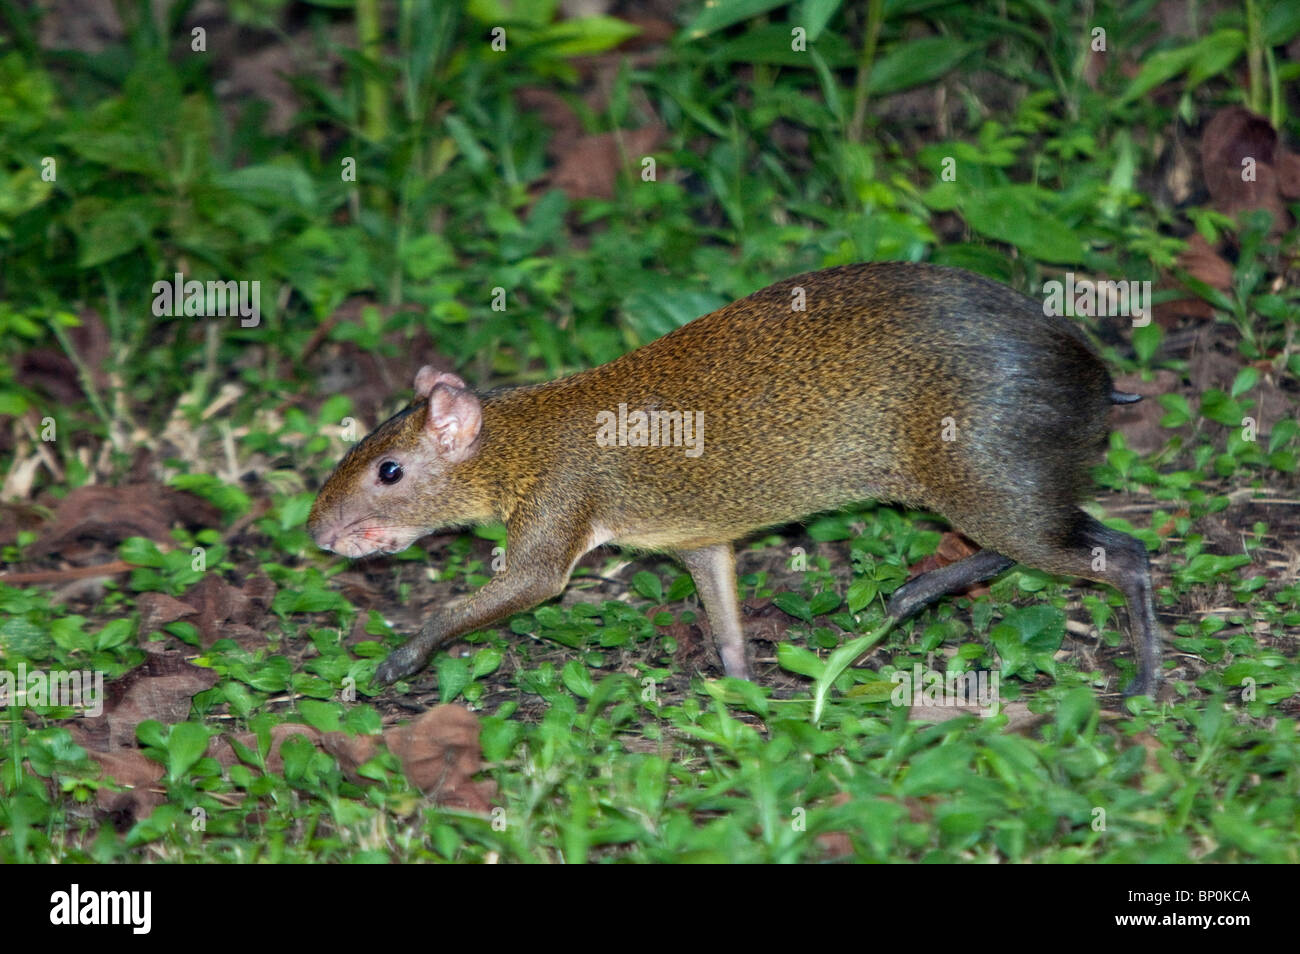 Peru. A brown aguti in the tropical forest of the Amazon Basin. - Stock Image